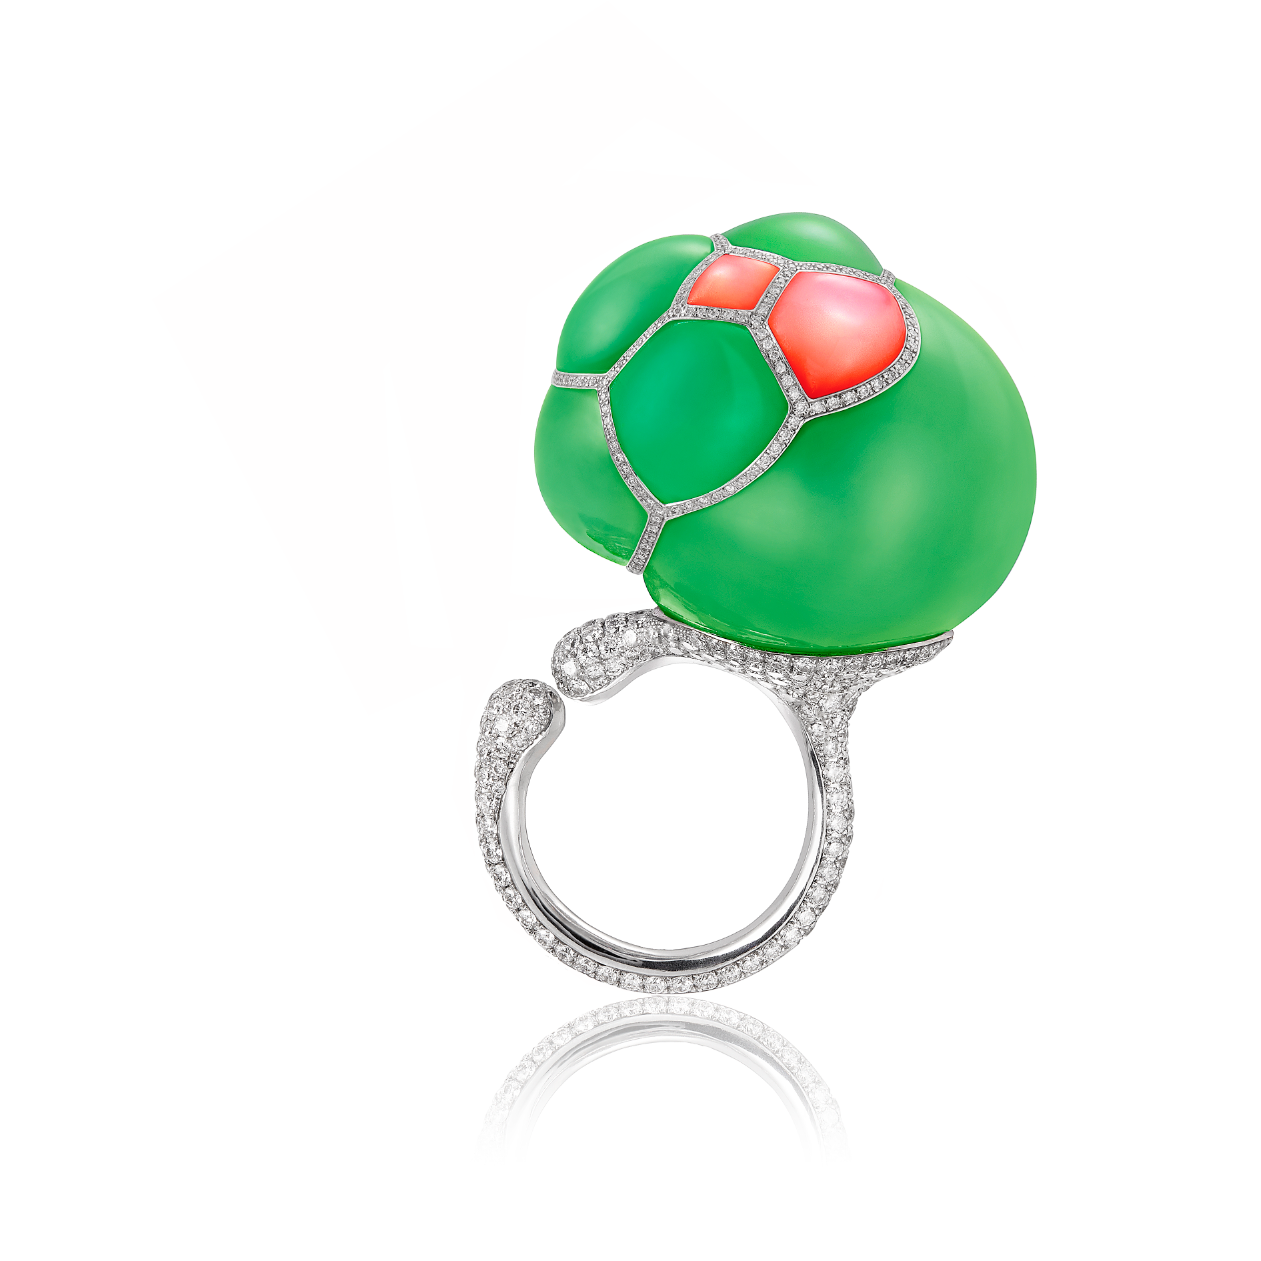 Gurmit's Bubble Ring in white gold, red coral diamonds and chrysoprase  inspired by structures of soap bubbles.